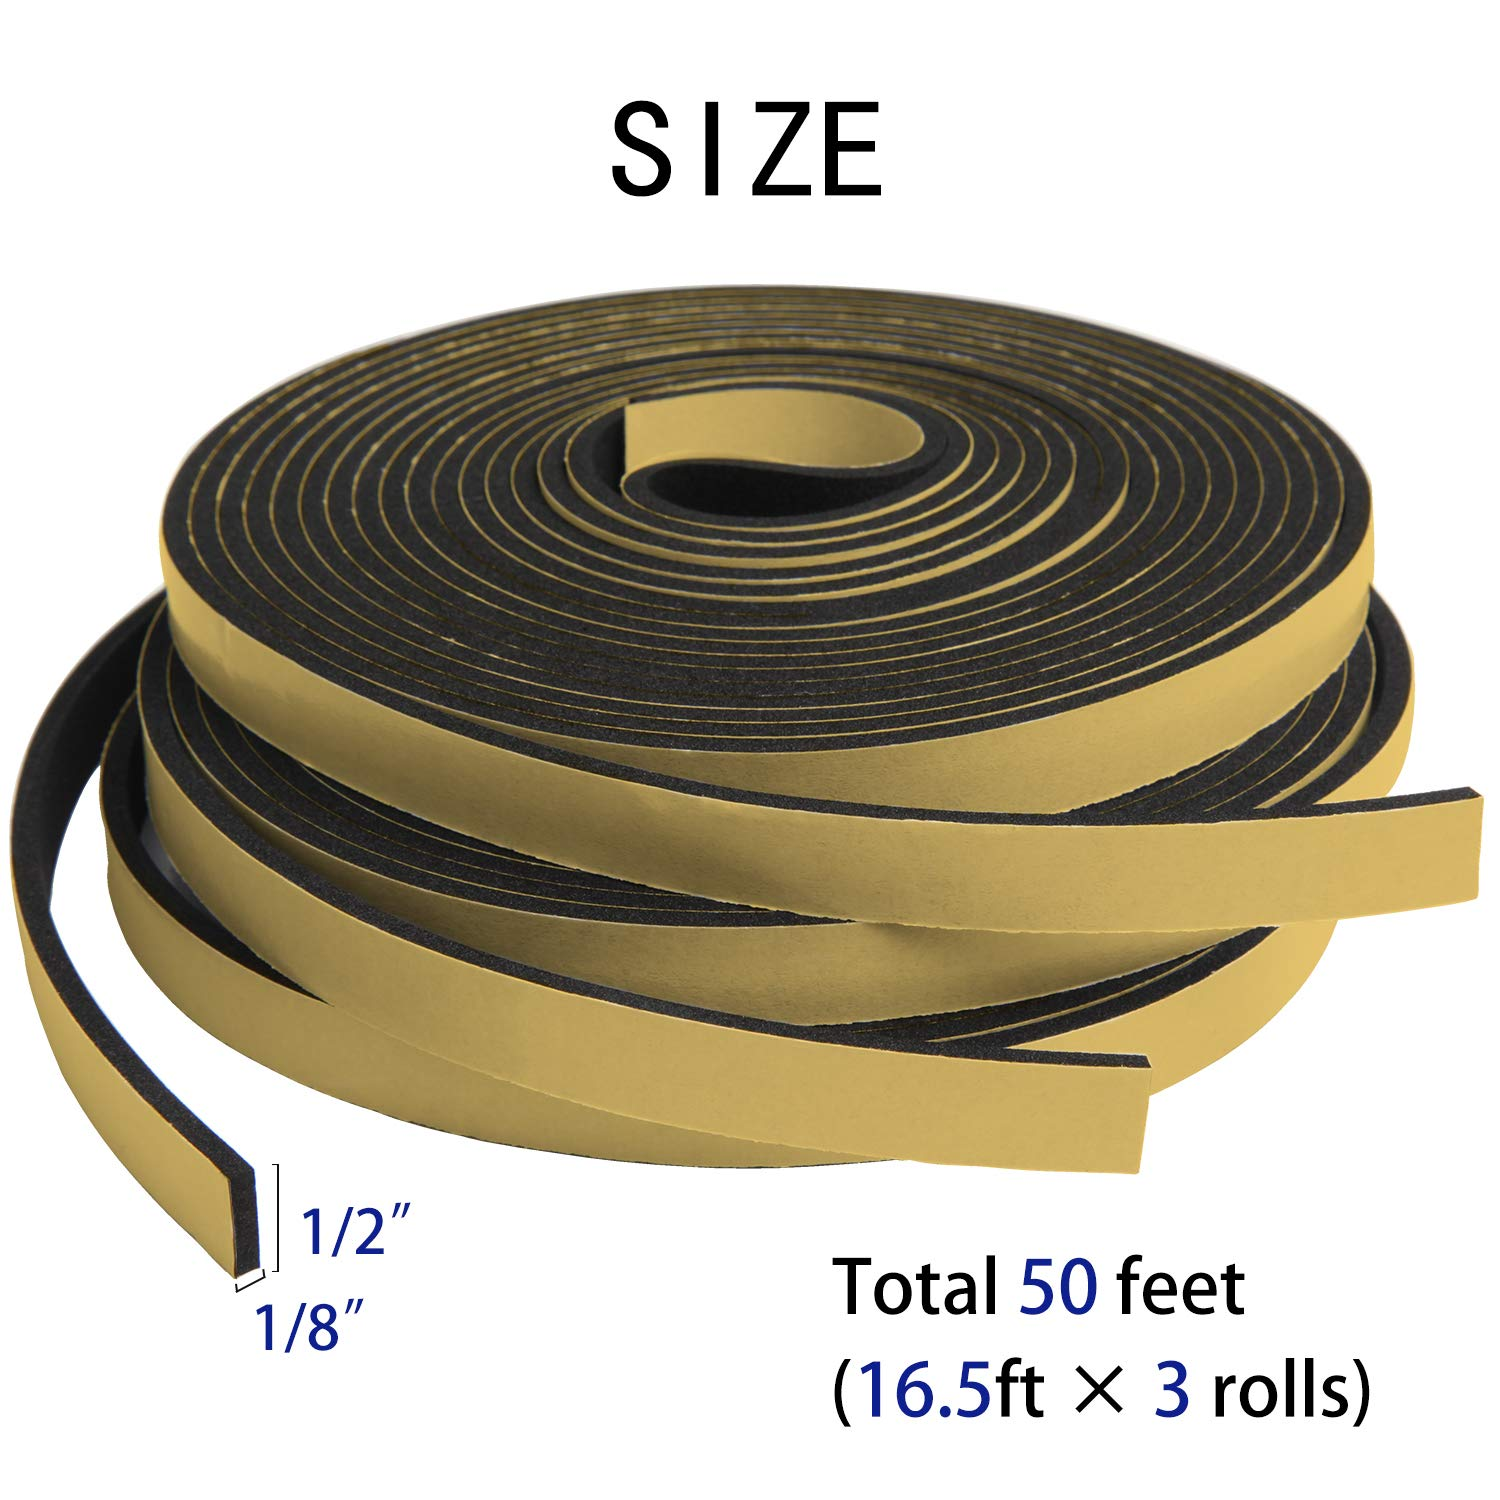 Neoprene Foam Weatherstrip Tape for Automotive 33 Ft Length 2 Rolls of 16.5 Ft Each Adhesive Weather Stripping 1 W X 1//8 T